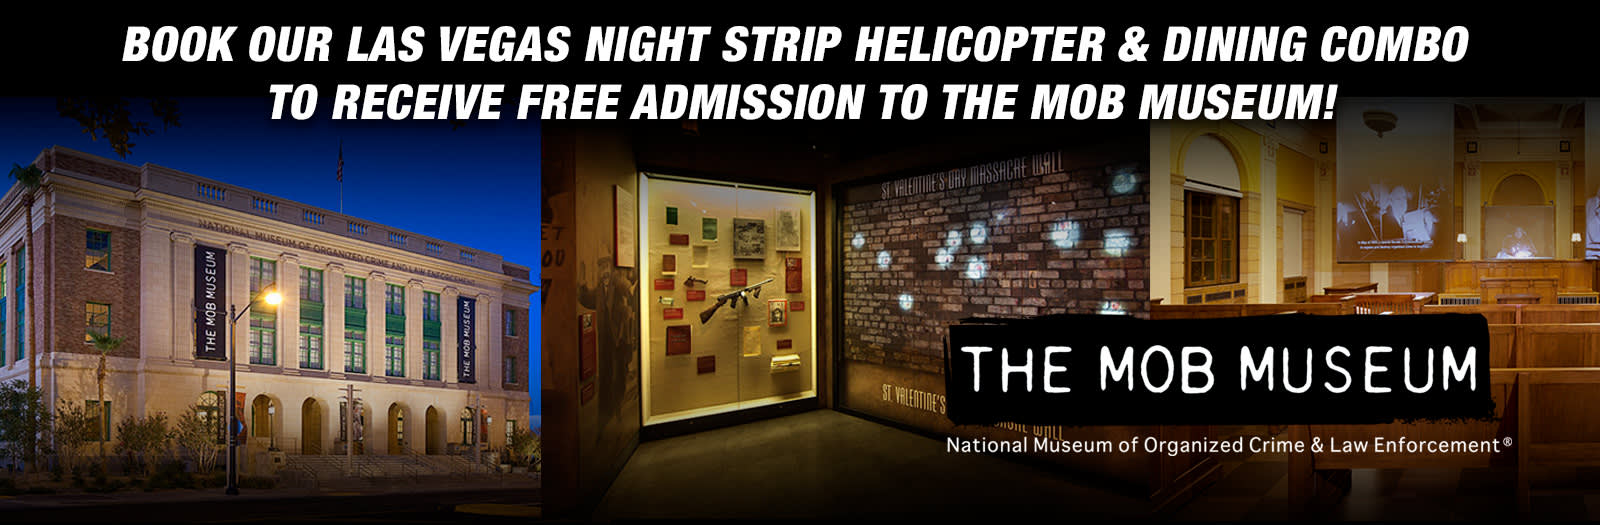 5 star helicopters discount tours with mob museum ticket